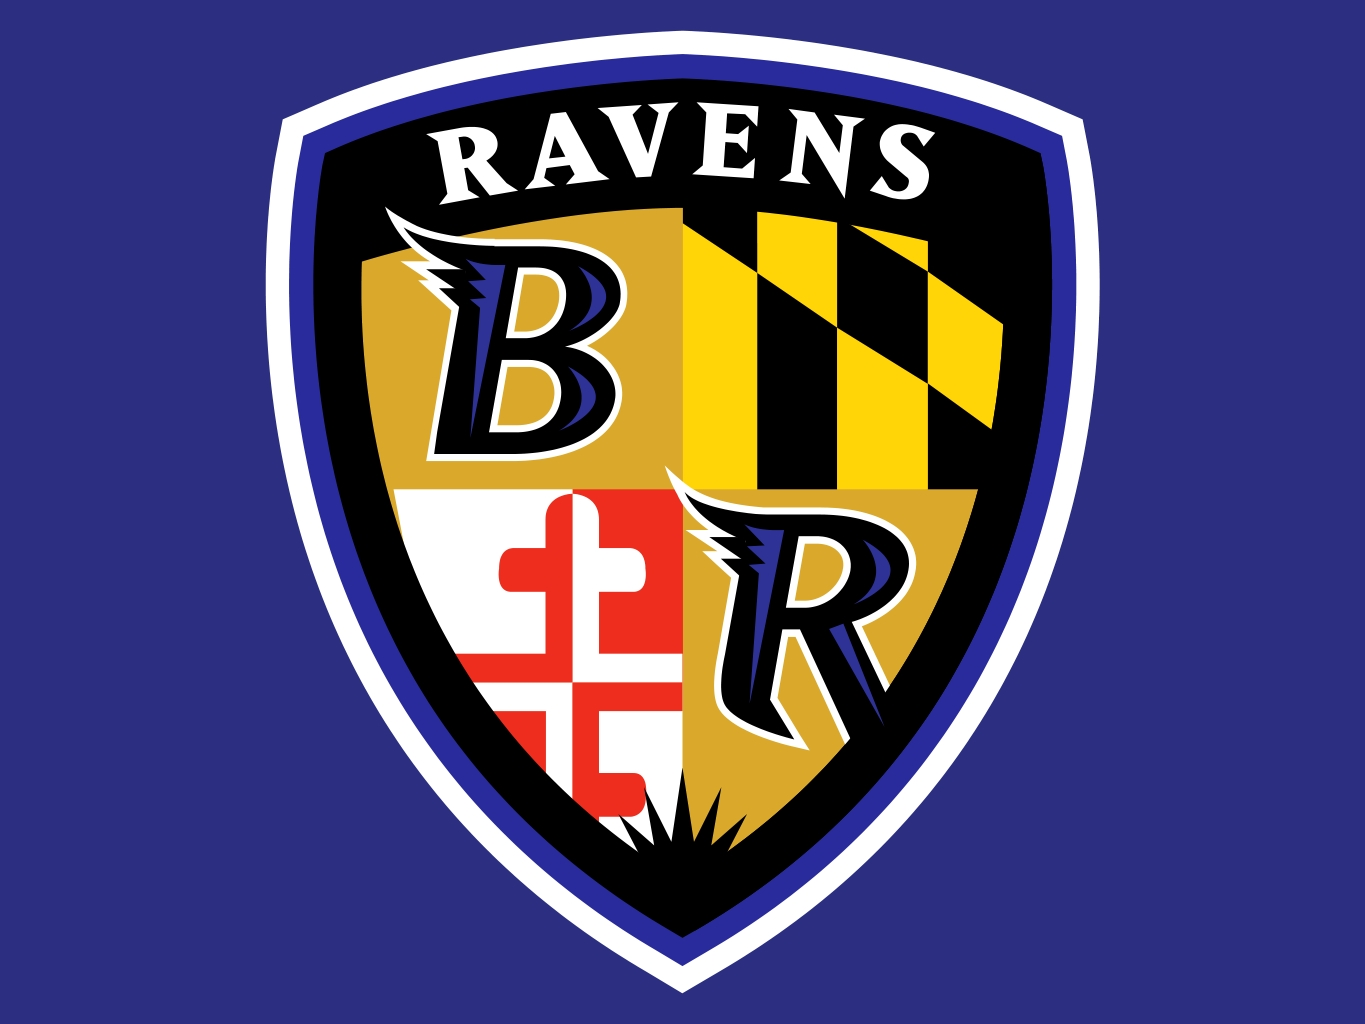 My Logo Pictures: Baltimore Ravens Logos